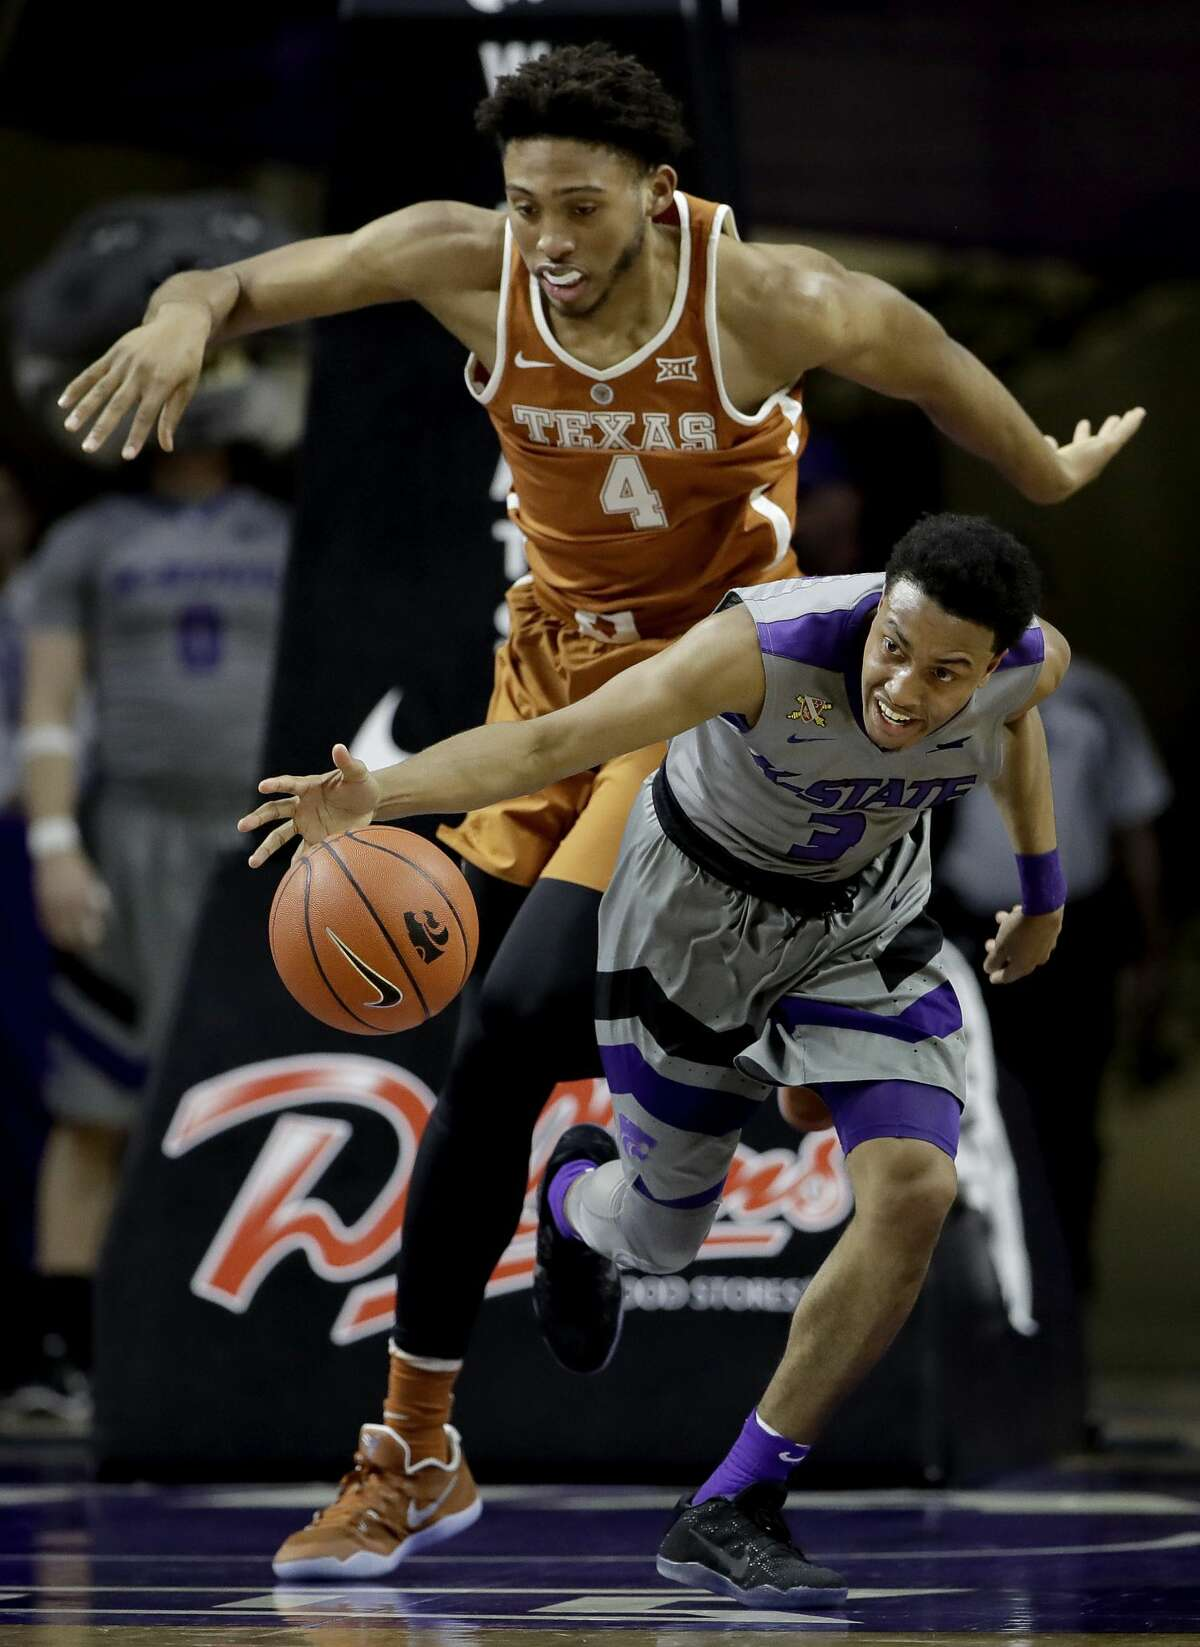 Kansas State's Kamau Stokes (3) beats Texas' James Banks (4) to a loose ball during the second half of an NCAA college basketball game Friday, Dec. 30, 2016, in Manhattan, Kan. Kansas State won 65-62. (AP Photo/Charlie Riedel)